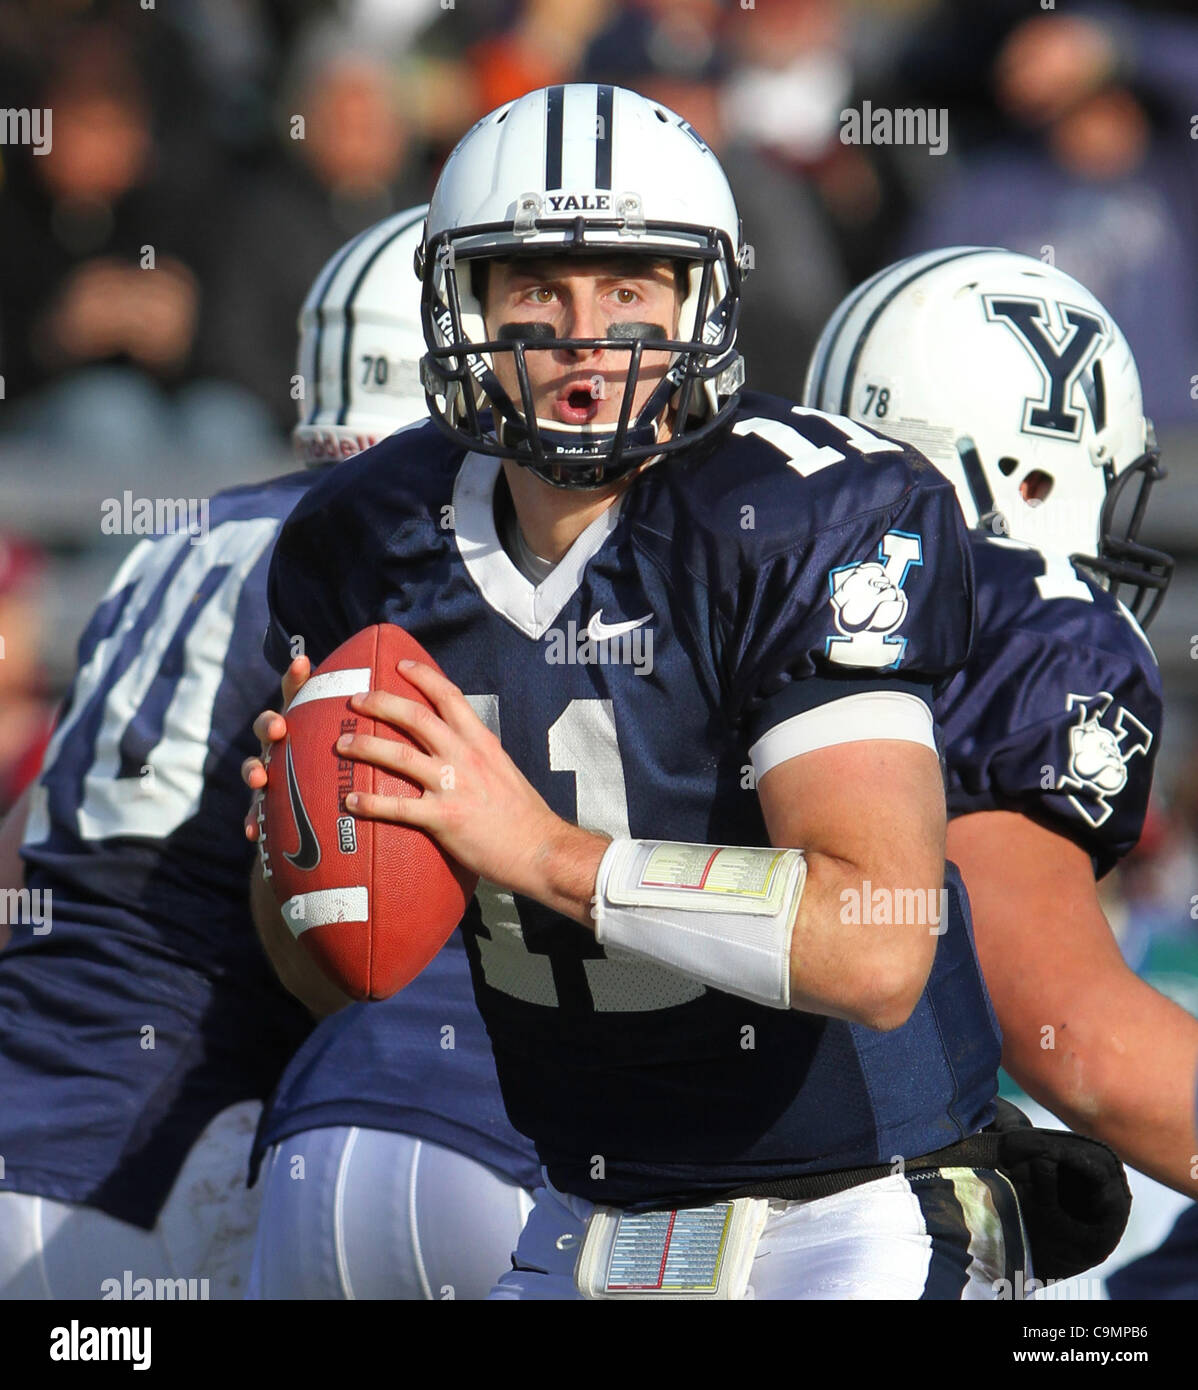 Nov. 19, 2011 - New Haven, CT, U.S. - Yale quarterback #11 PATRICK WITT during the 128th playing of  ''The - Stock Image